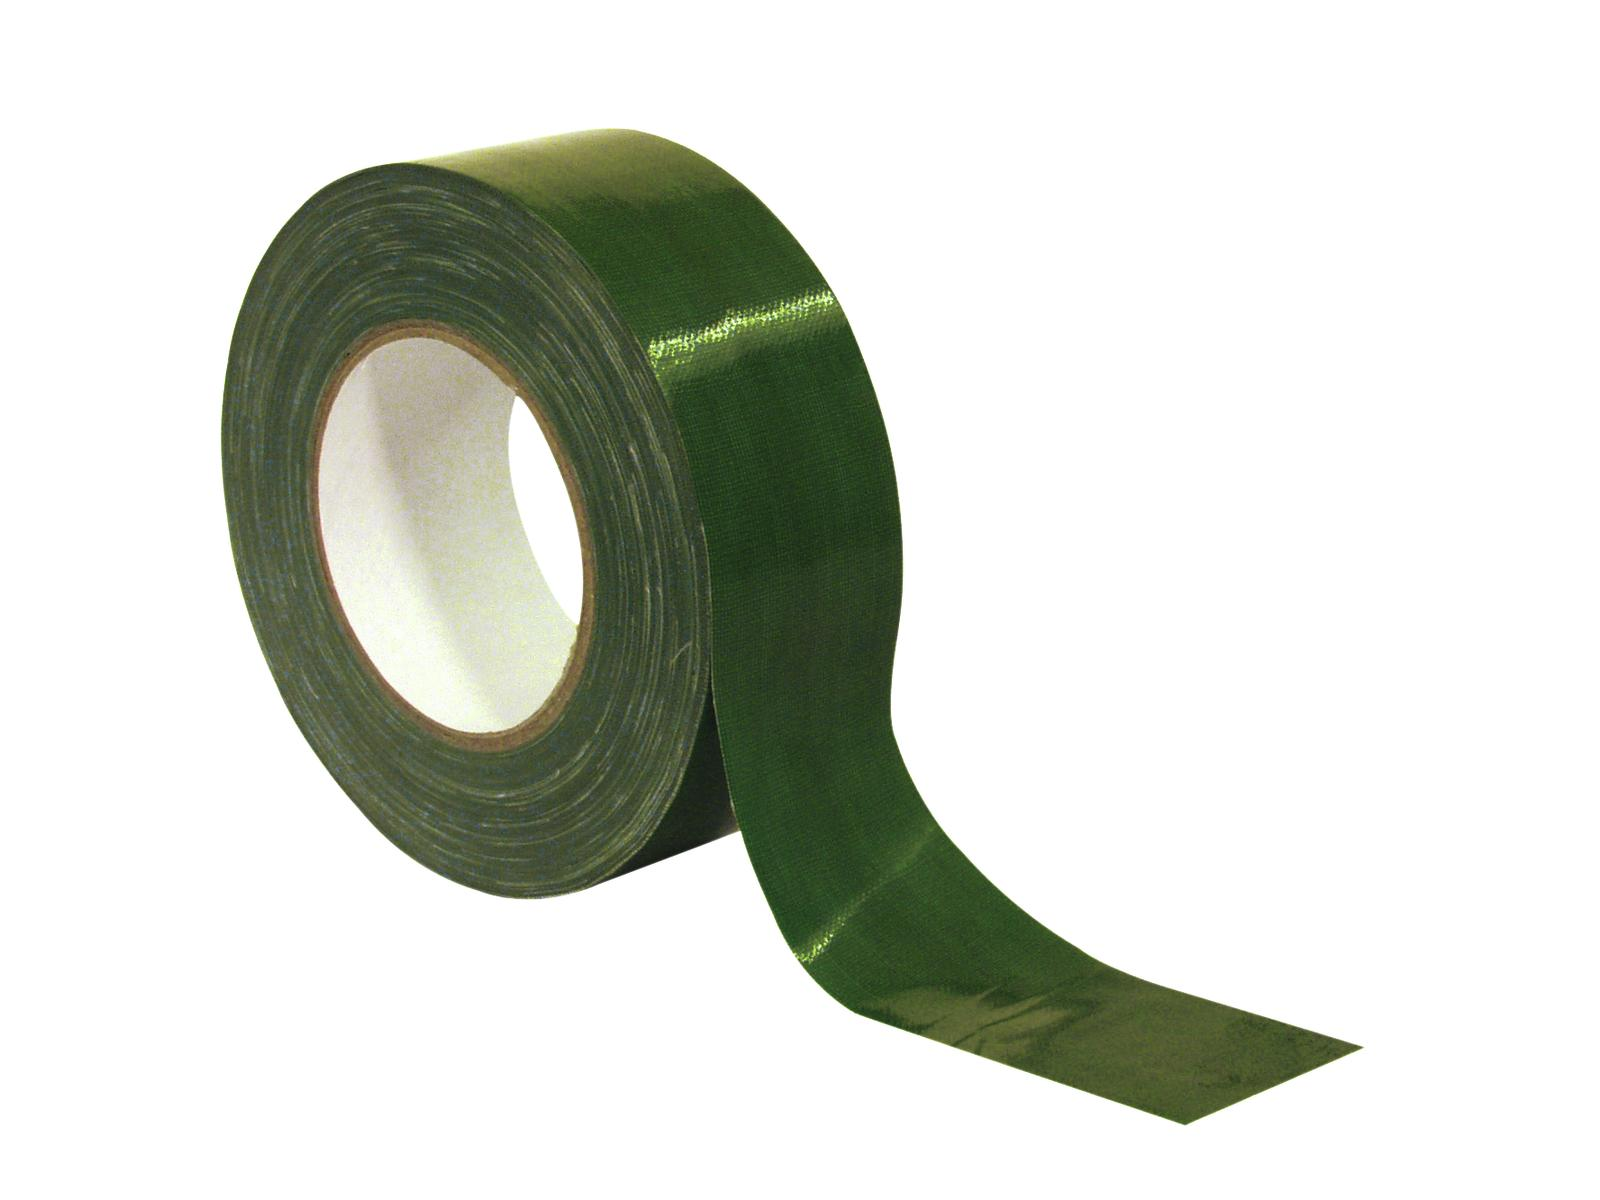 ACCESSORIO ai gaffa Tape Pro 50mm x 50m verde